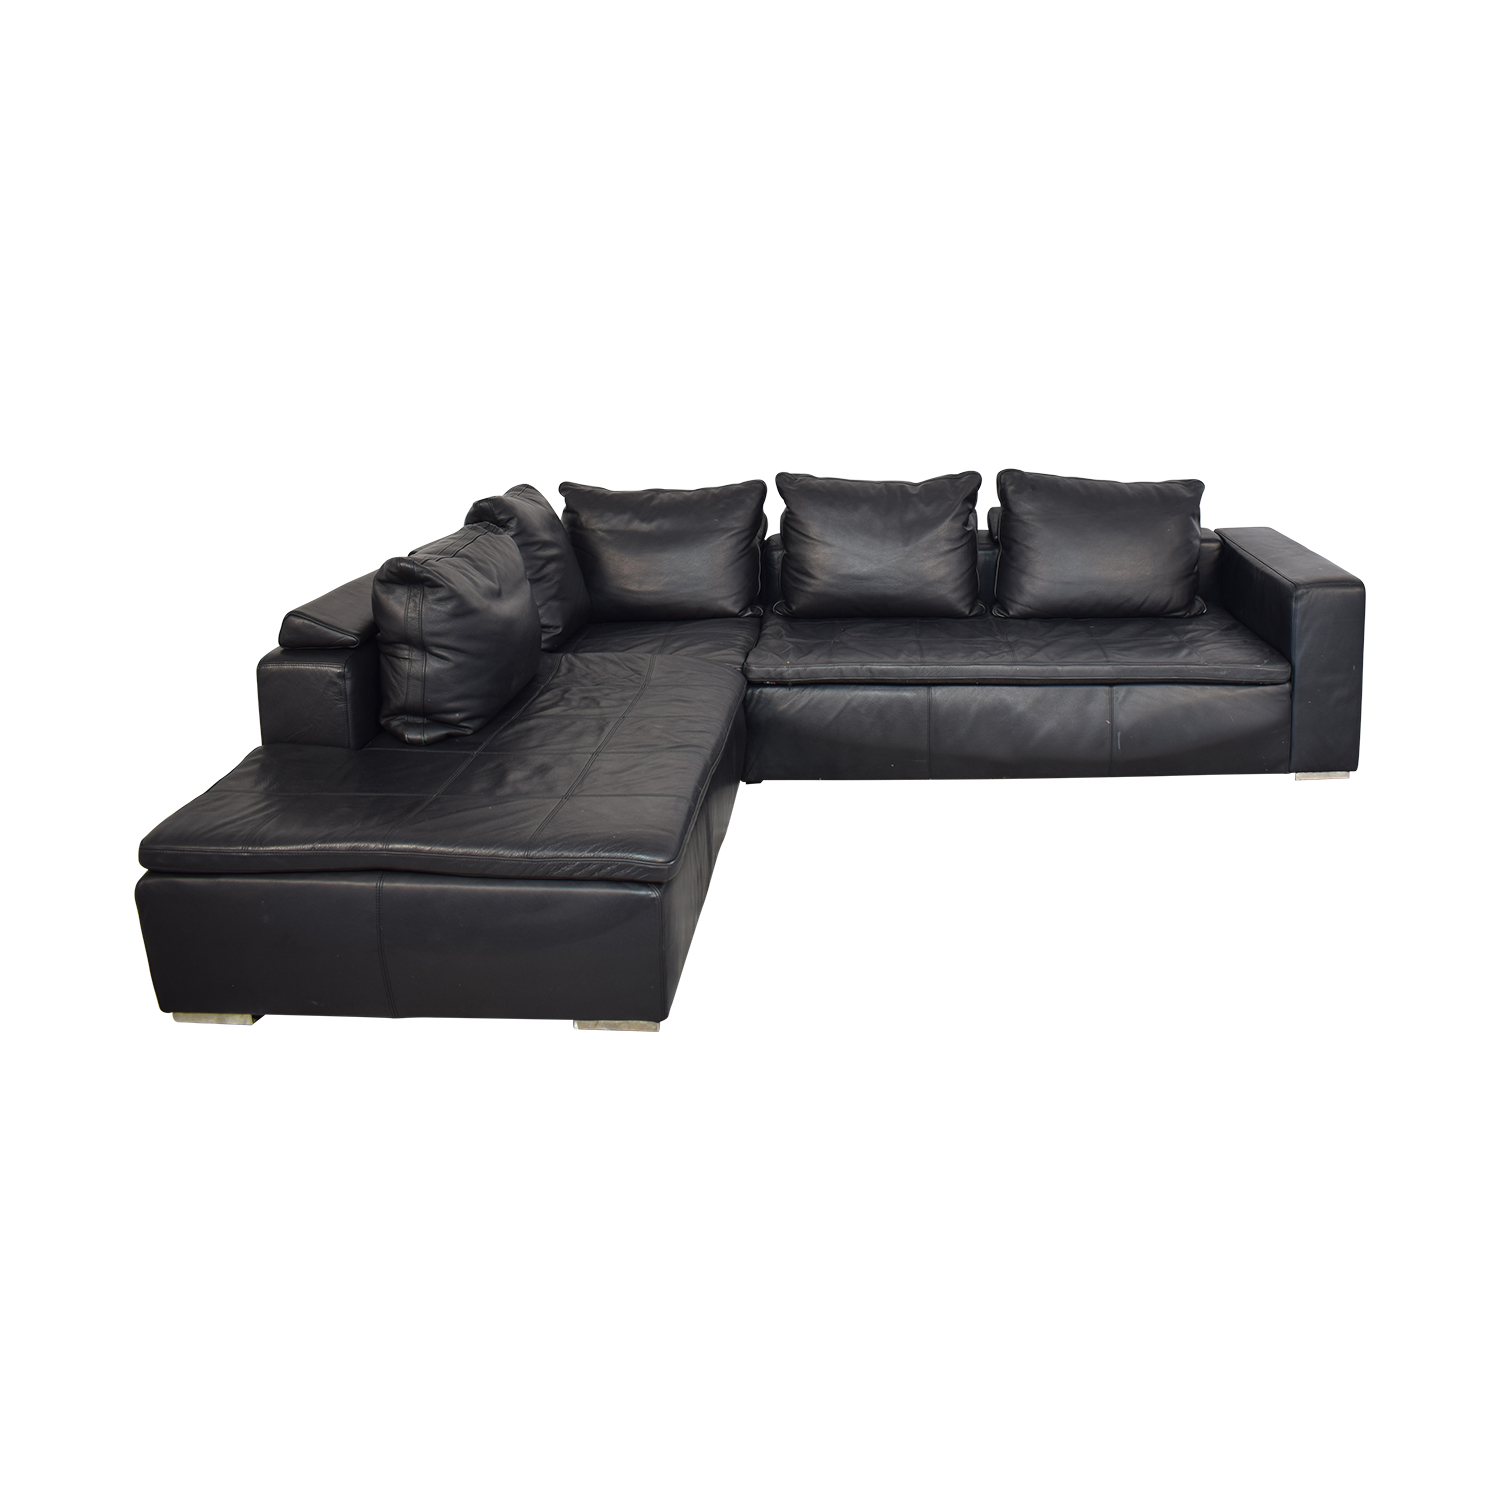 BoConcept BoConcept Mezzo Corner Sofa for sale